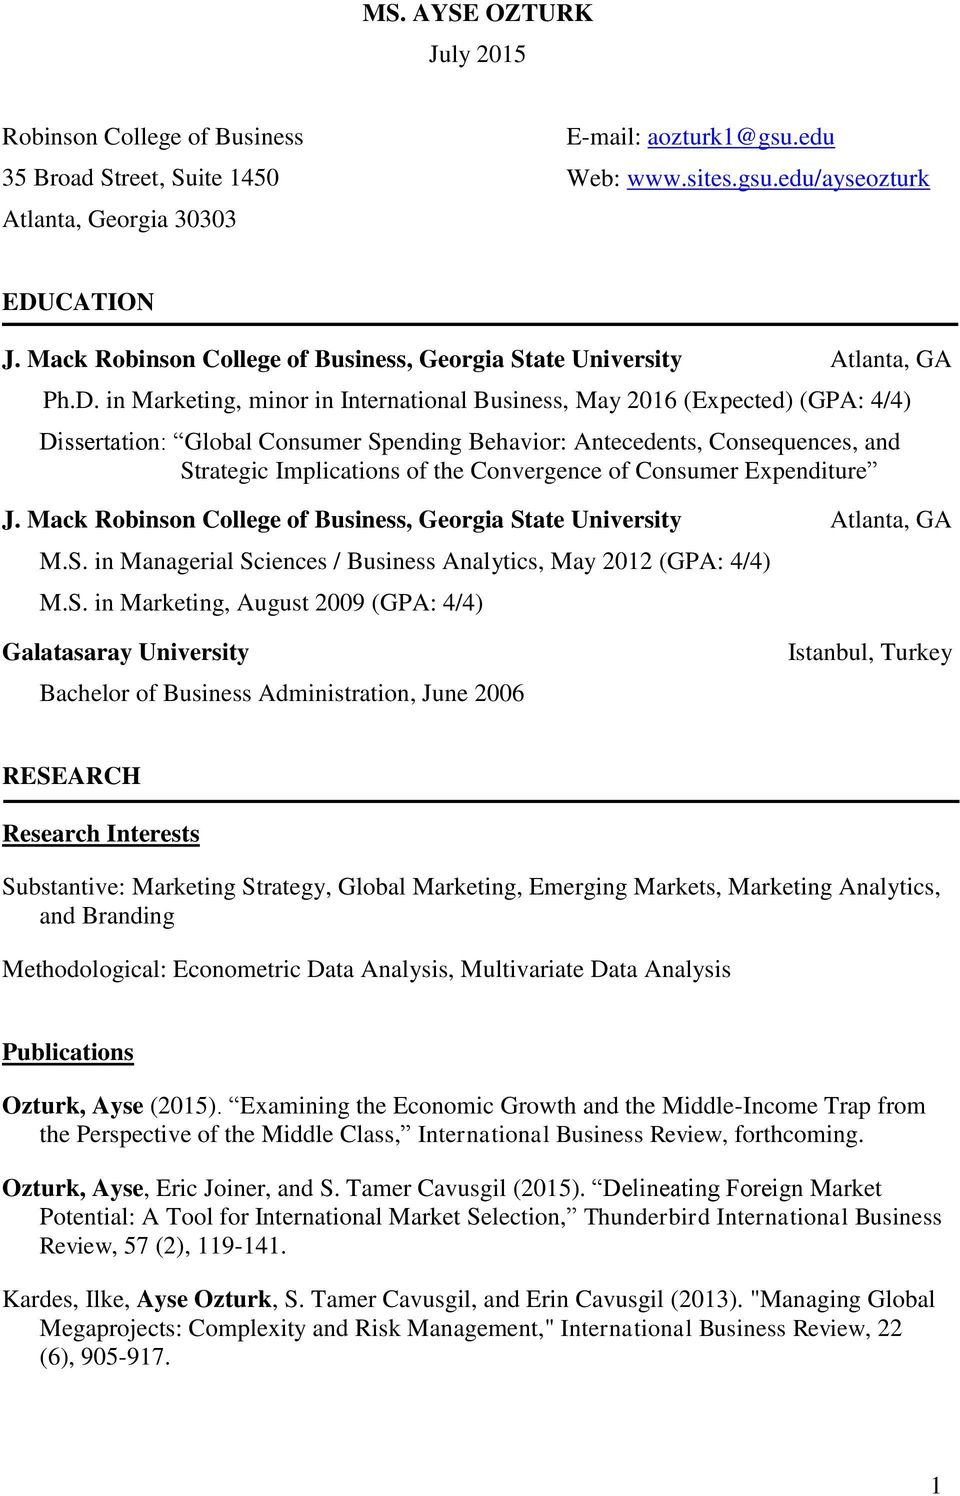 in Marketing, minor in International Business, May 2016 (Expected) (GPA: 4/4) Dissertation: Global Consumer Spending Behavior: Antecedents, Consequences, and Strategic Implications of the Convergence